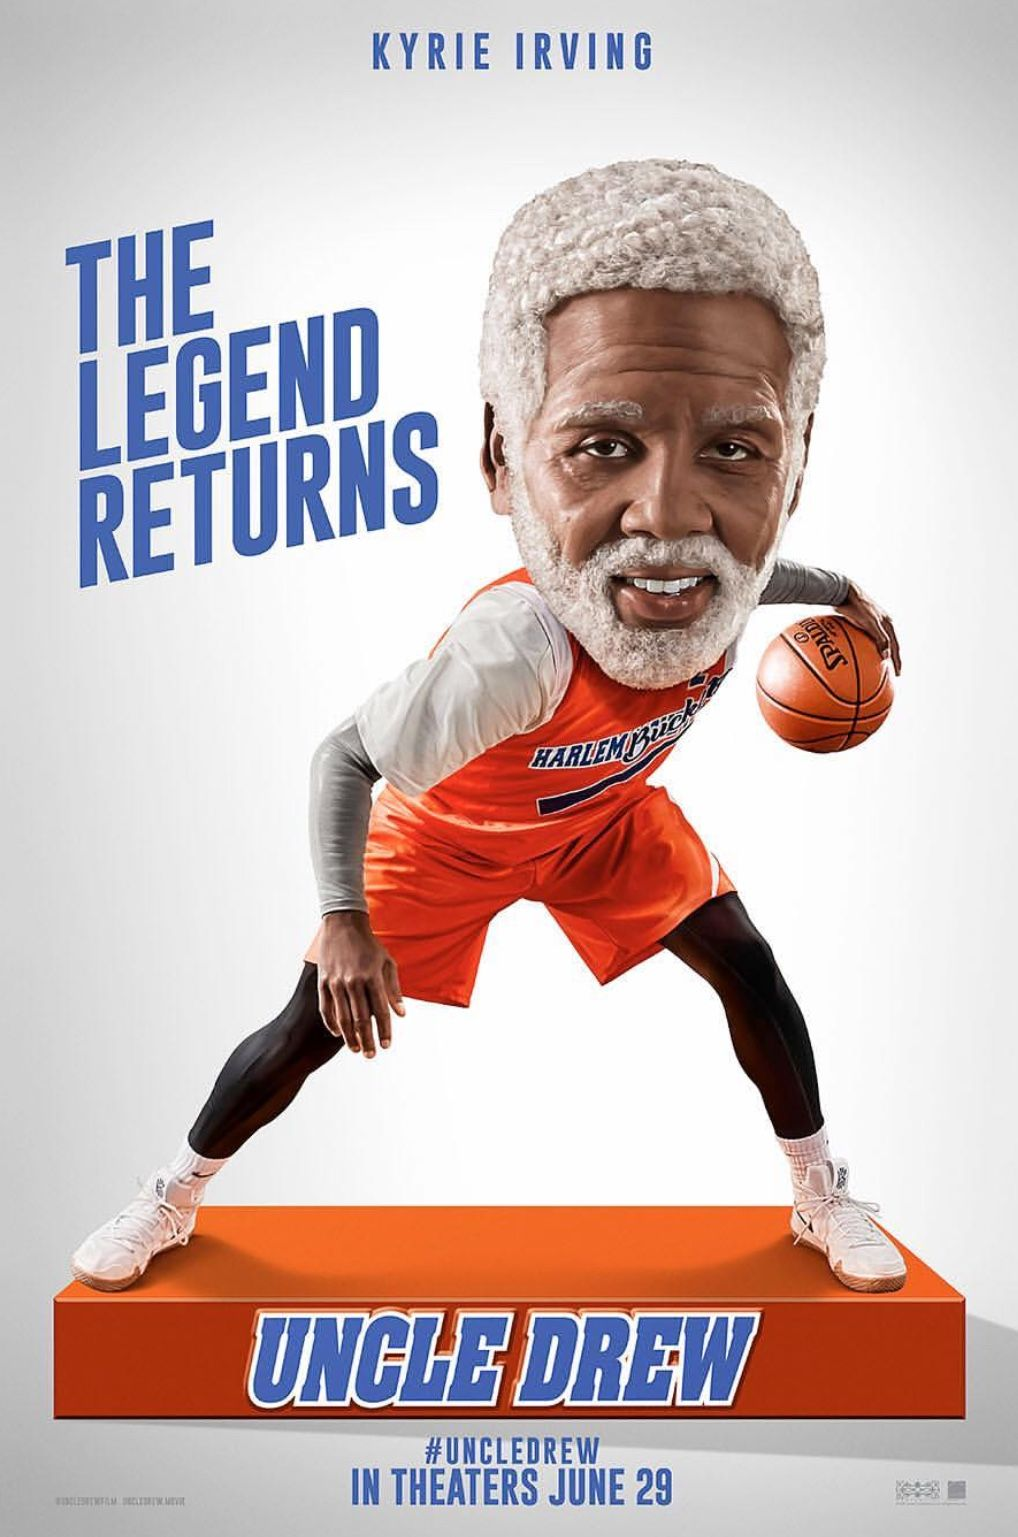 Uncle Drew aka KyrieIrving movie in theaters June 29th.